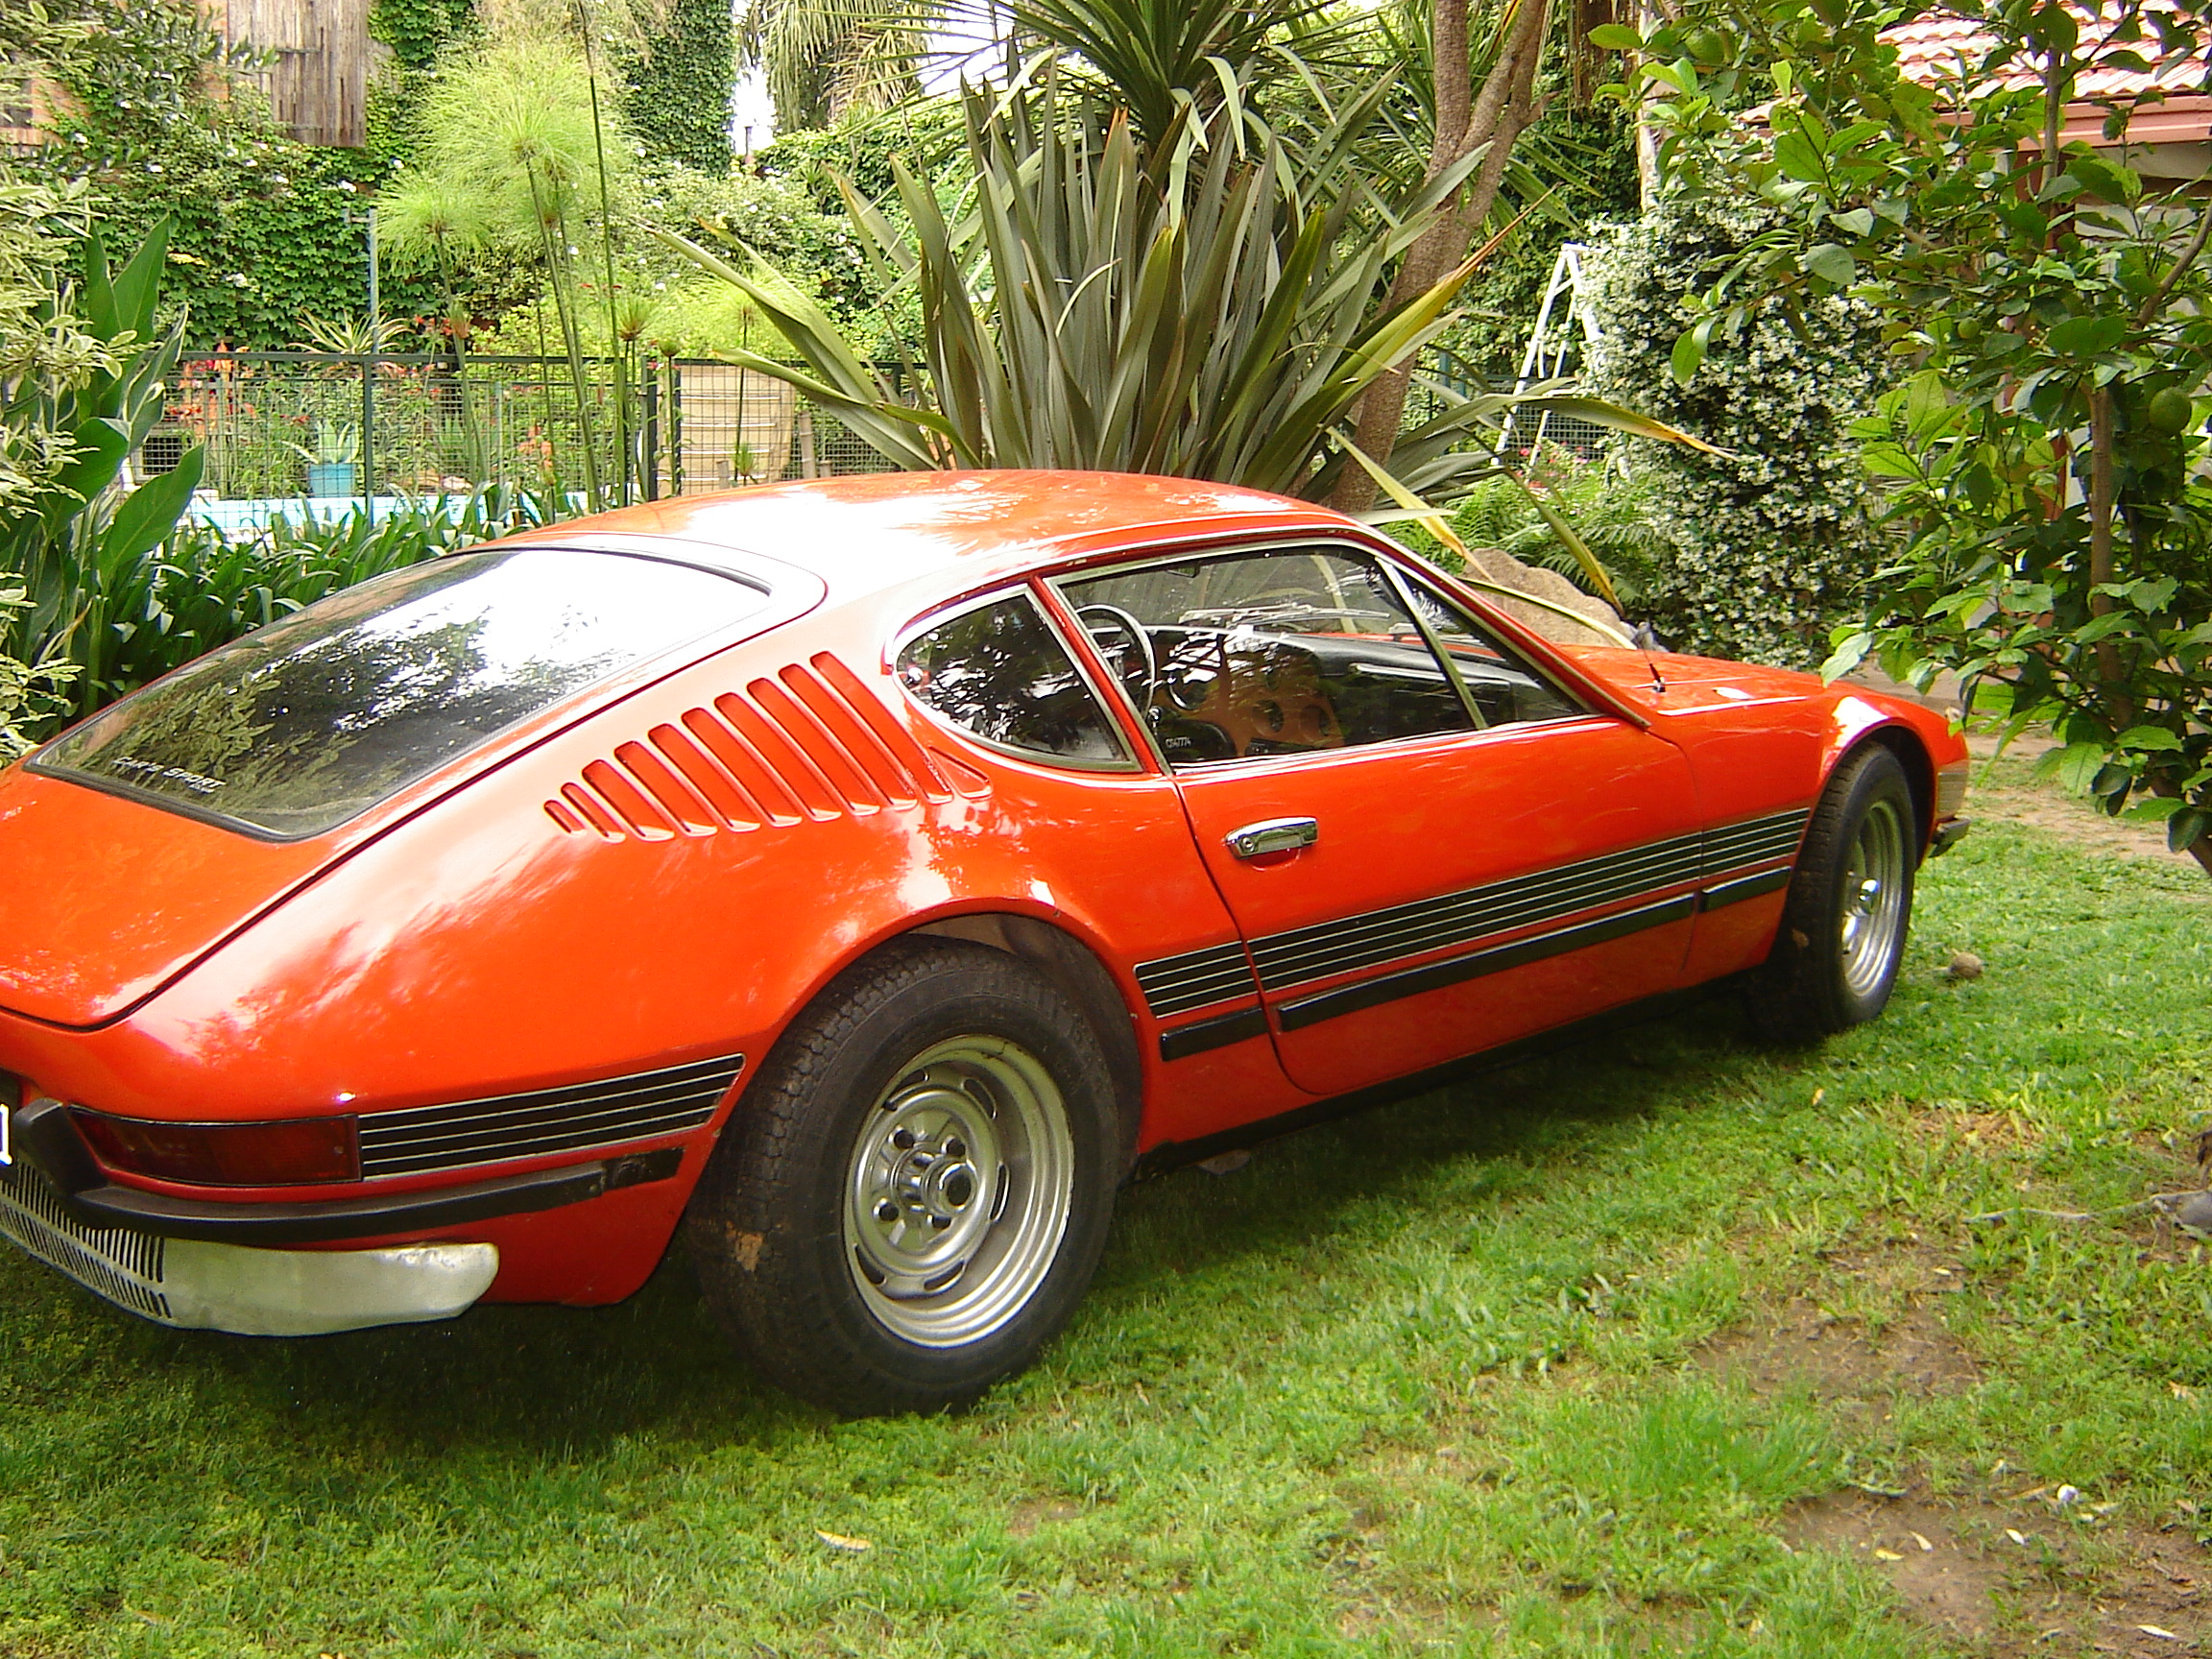 Volkswagen sp2 photo - 2